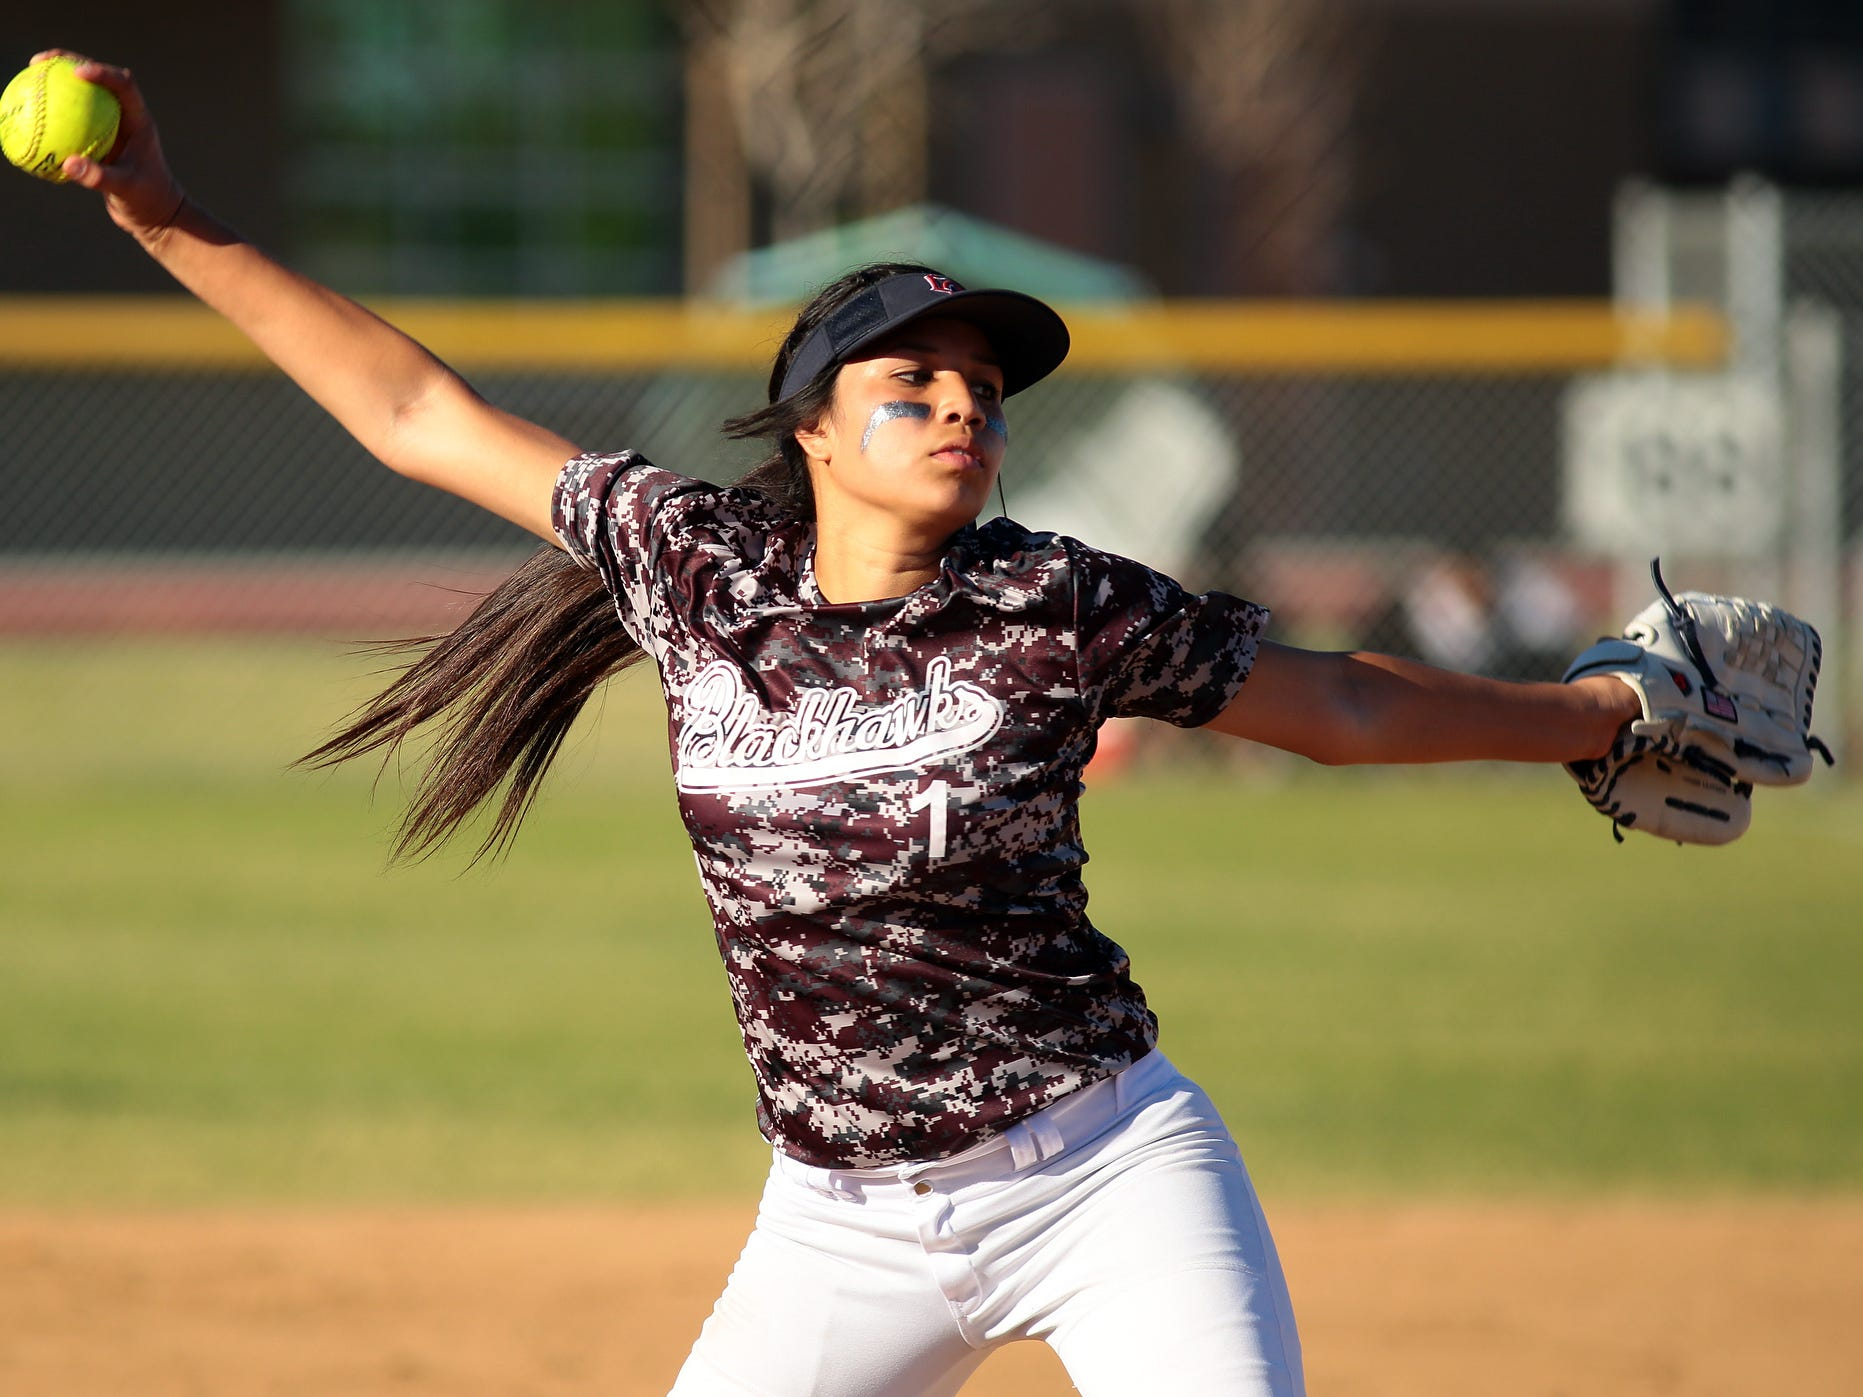 La Quinta pitcher Star Padilla throws to a Shadow Hills batter on Thursday afternoon, March 26, 2015 during the first game of a double header between the Blackhawks and Knights. La Quinta won the afternoon game 7-5 and followed it with a 4-1 victory.